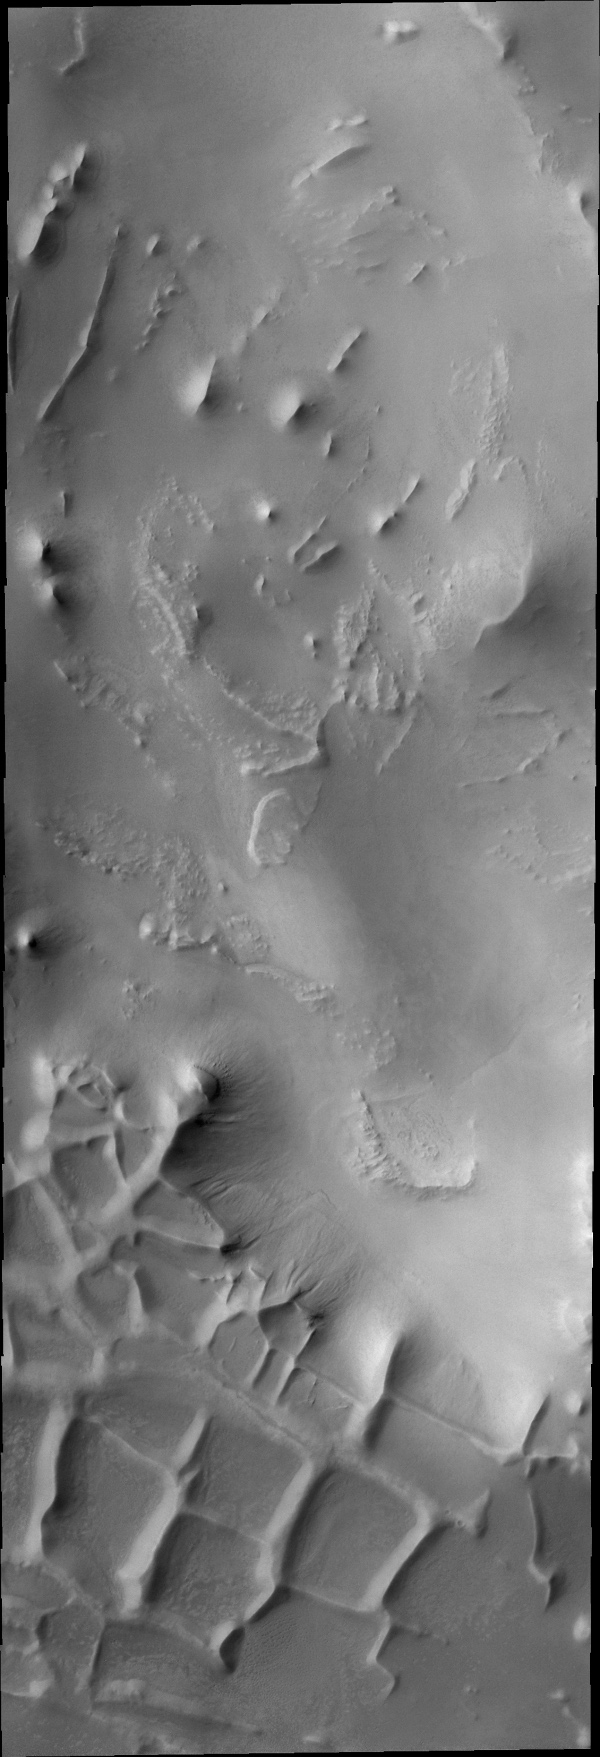 These ridges near the south polar cap are called Angustus Labyrinthus, as shown in this image captured by NASA's 2001 Mars Odyssey spacecraft.